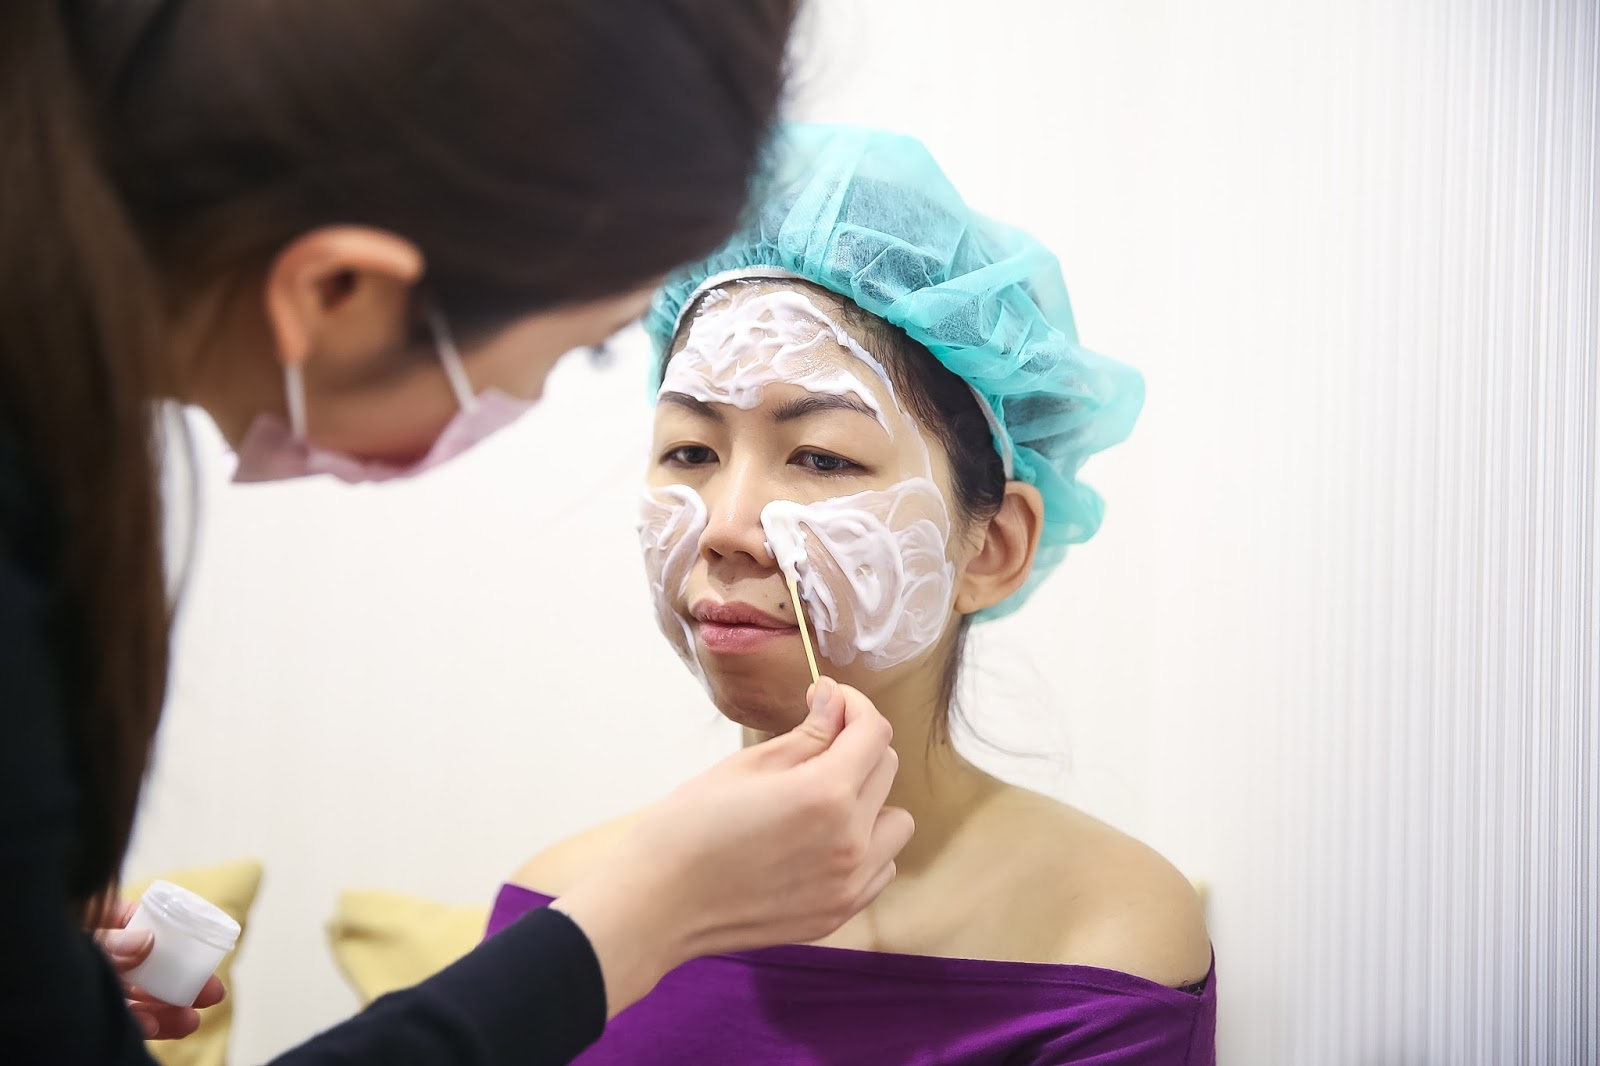 Quill Threadlift & Ultimate-V Lifting from Young Shine Clinic Taipei